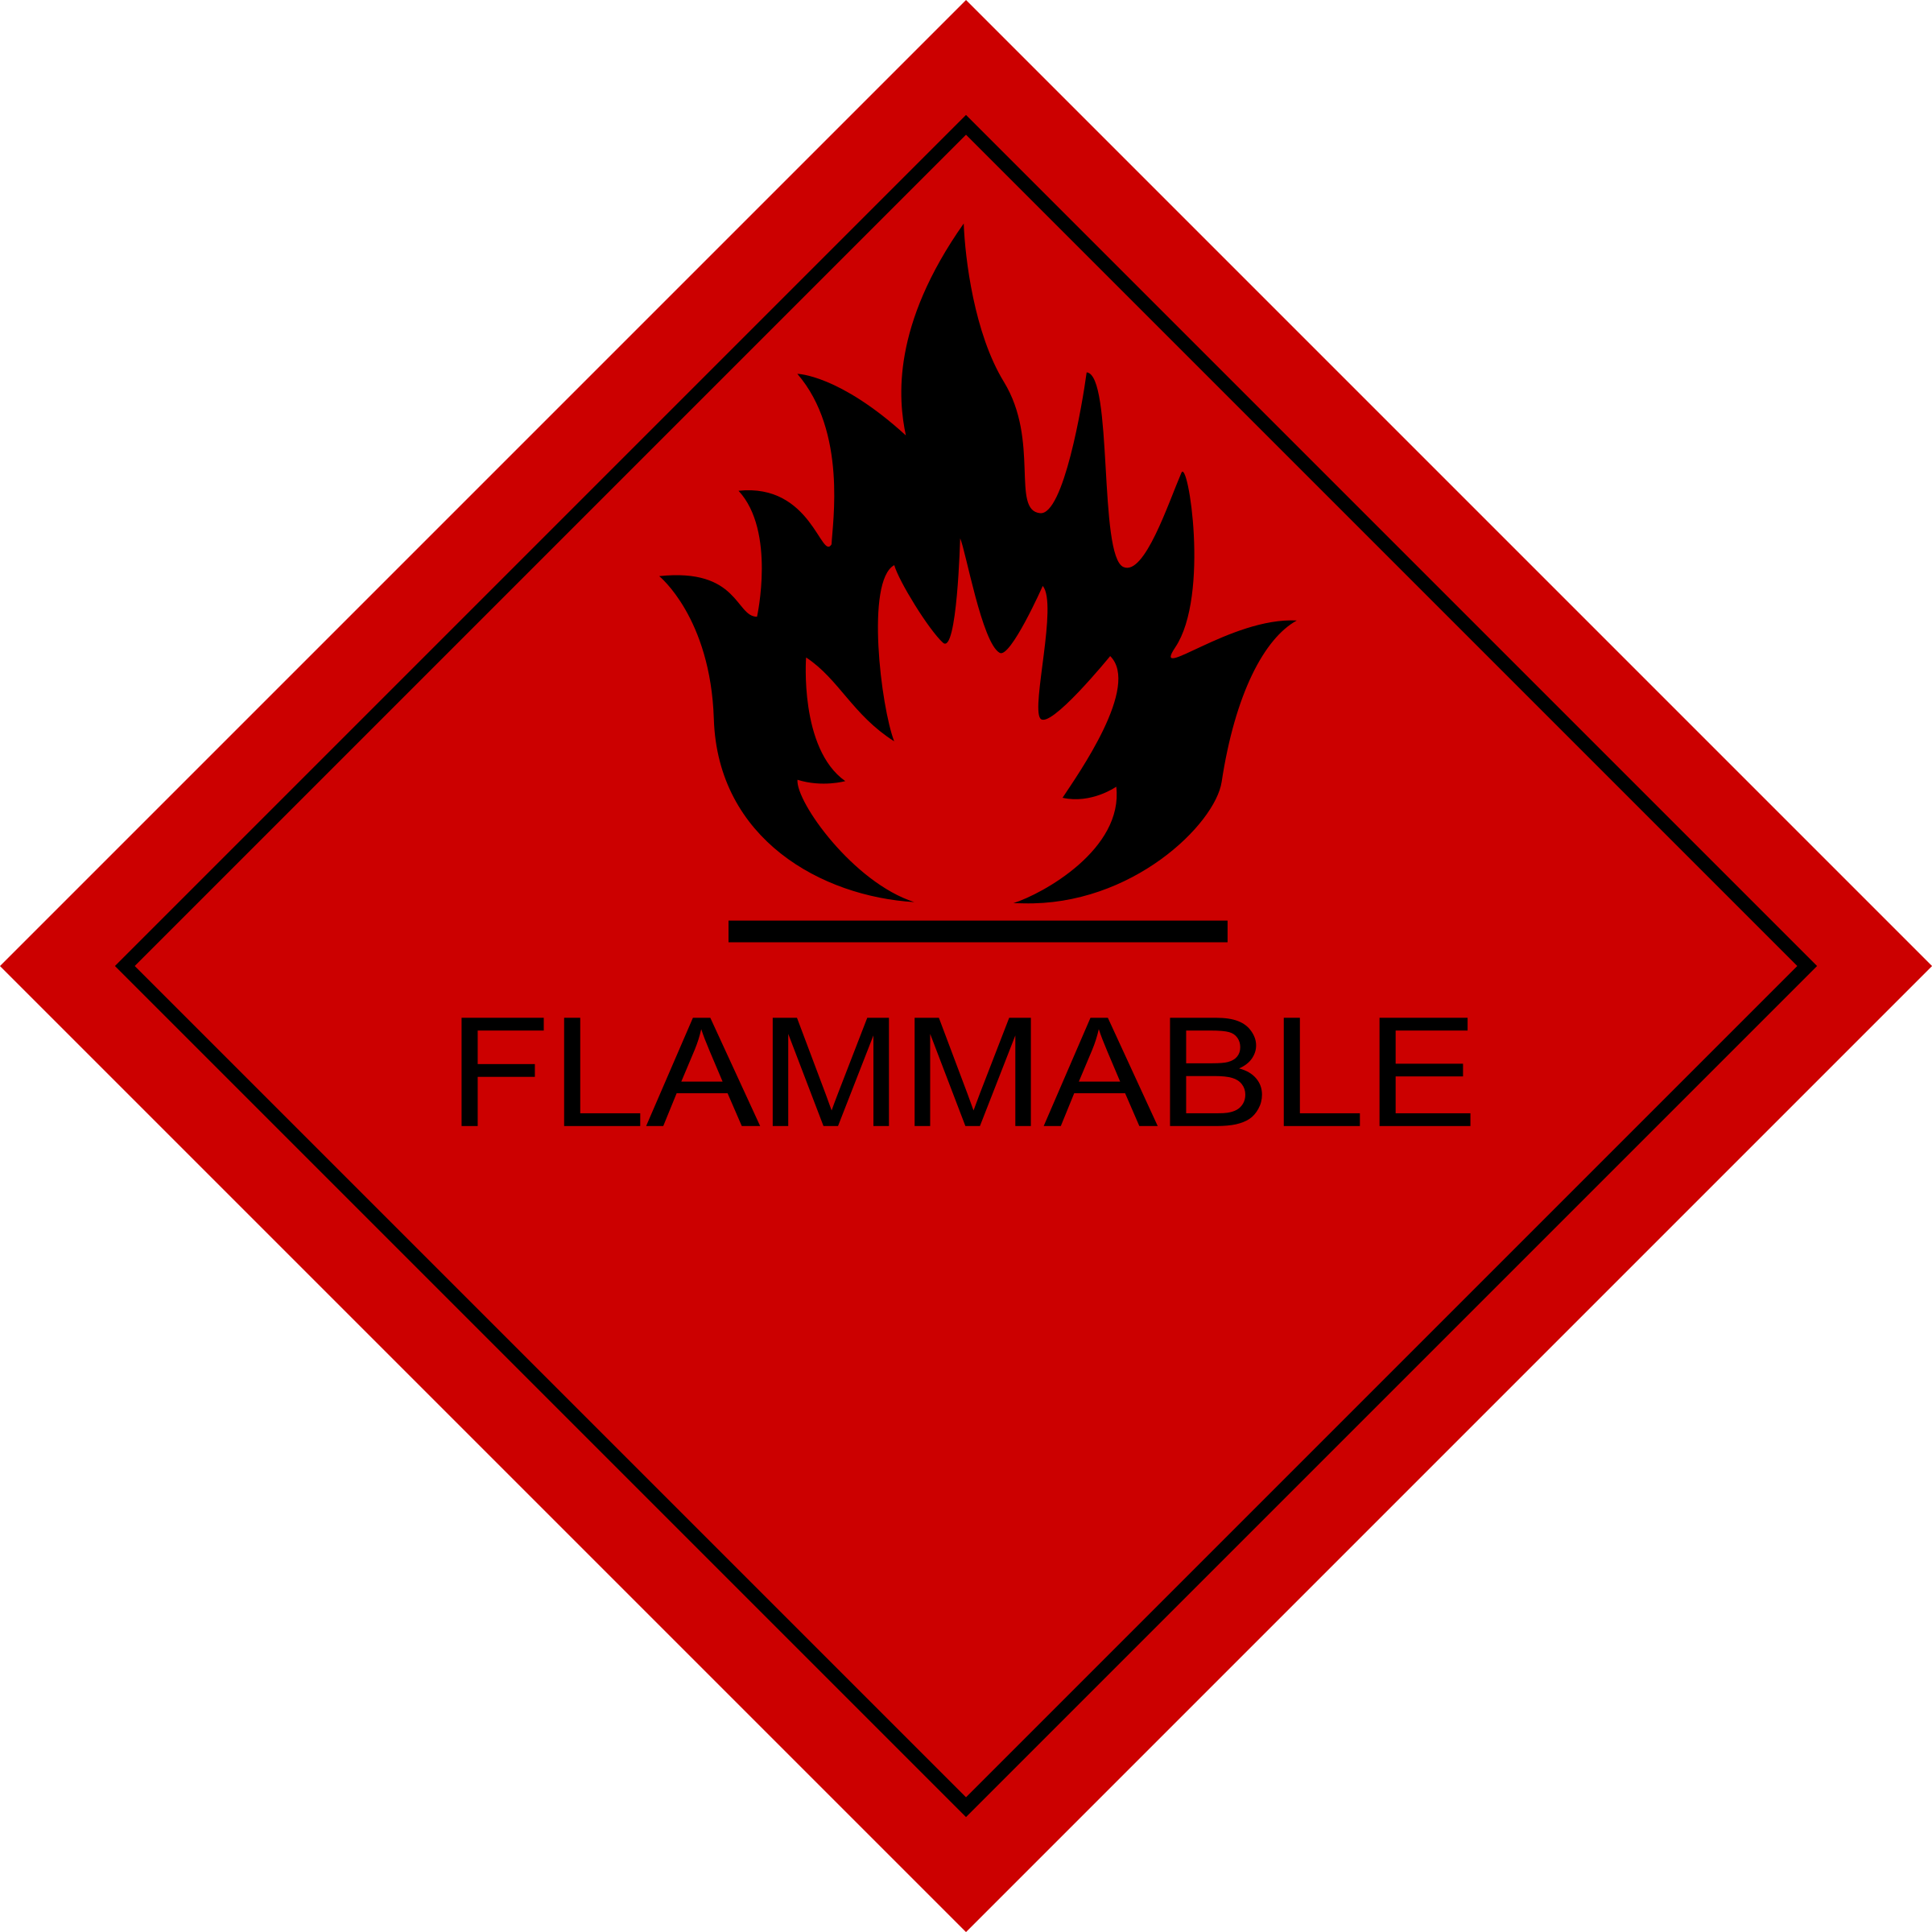 Flammable Sign by boobaloo